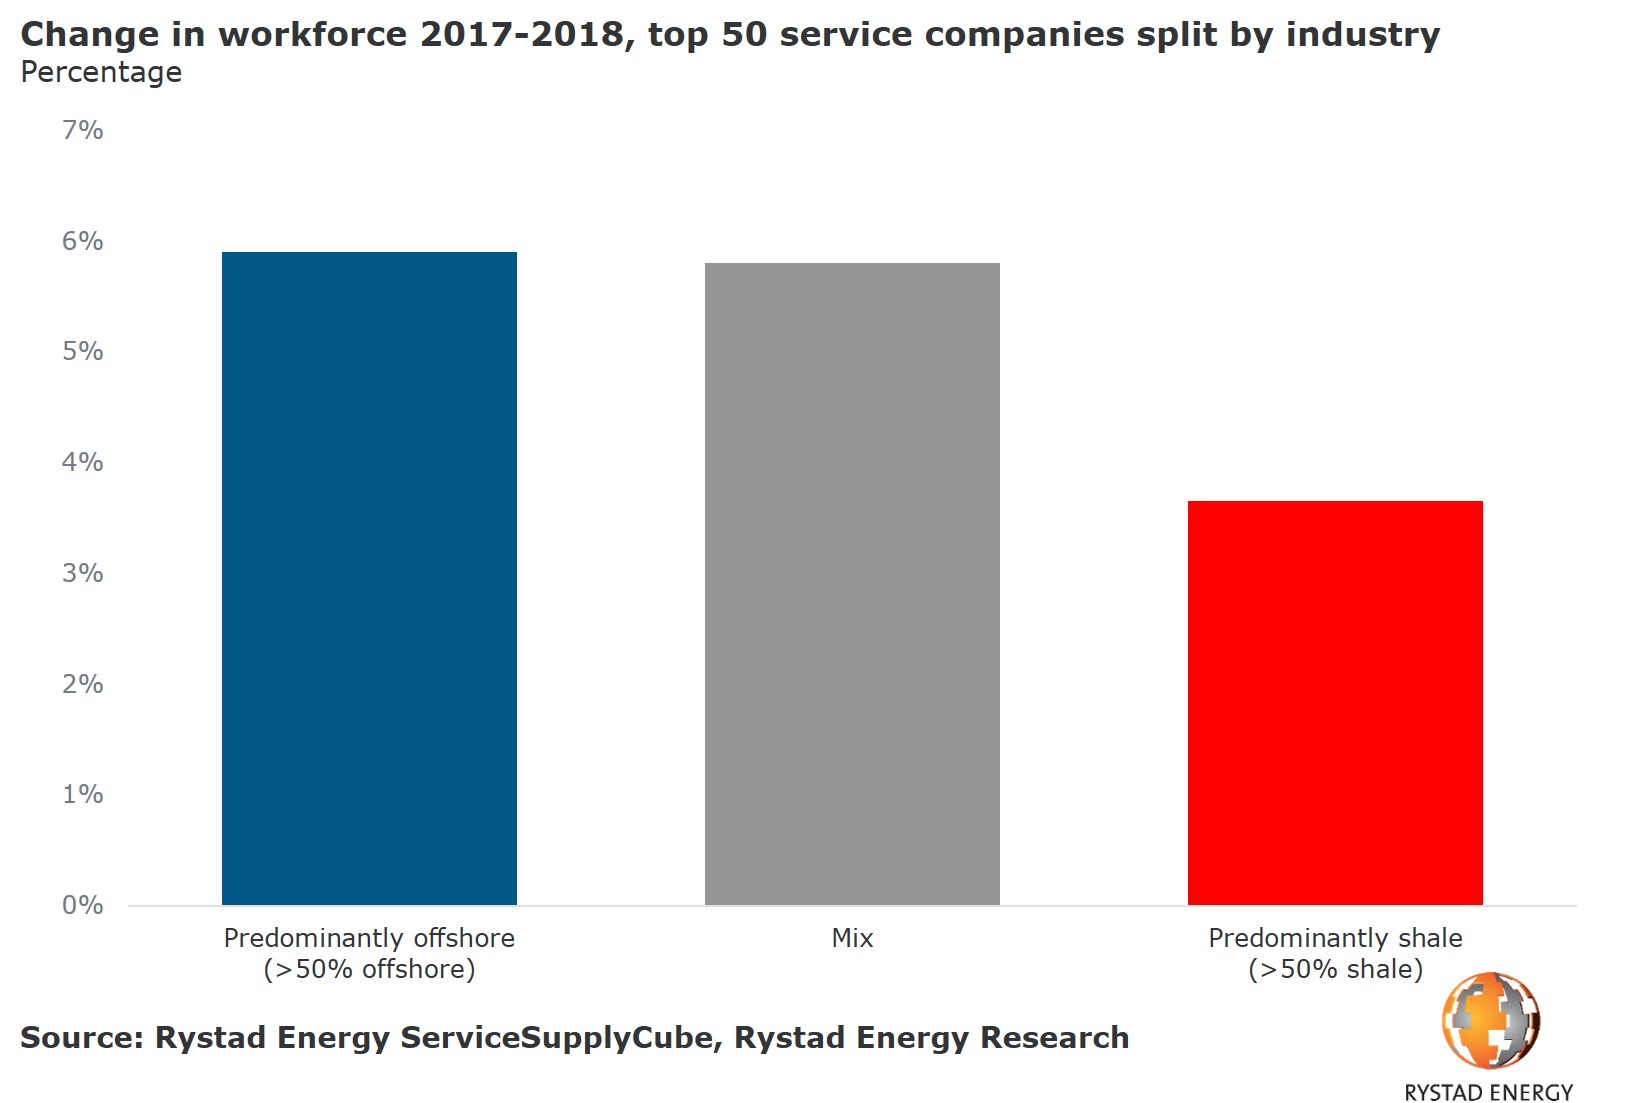 A abr chart showing the change in workforce 2017-2018, top 50 service companies split by industry in percentage. Source: Rystad Energy ServicesSupplyCube, Rystad Energy Research